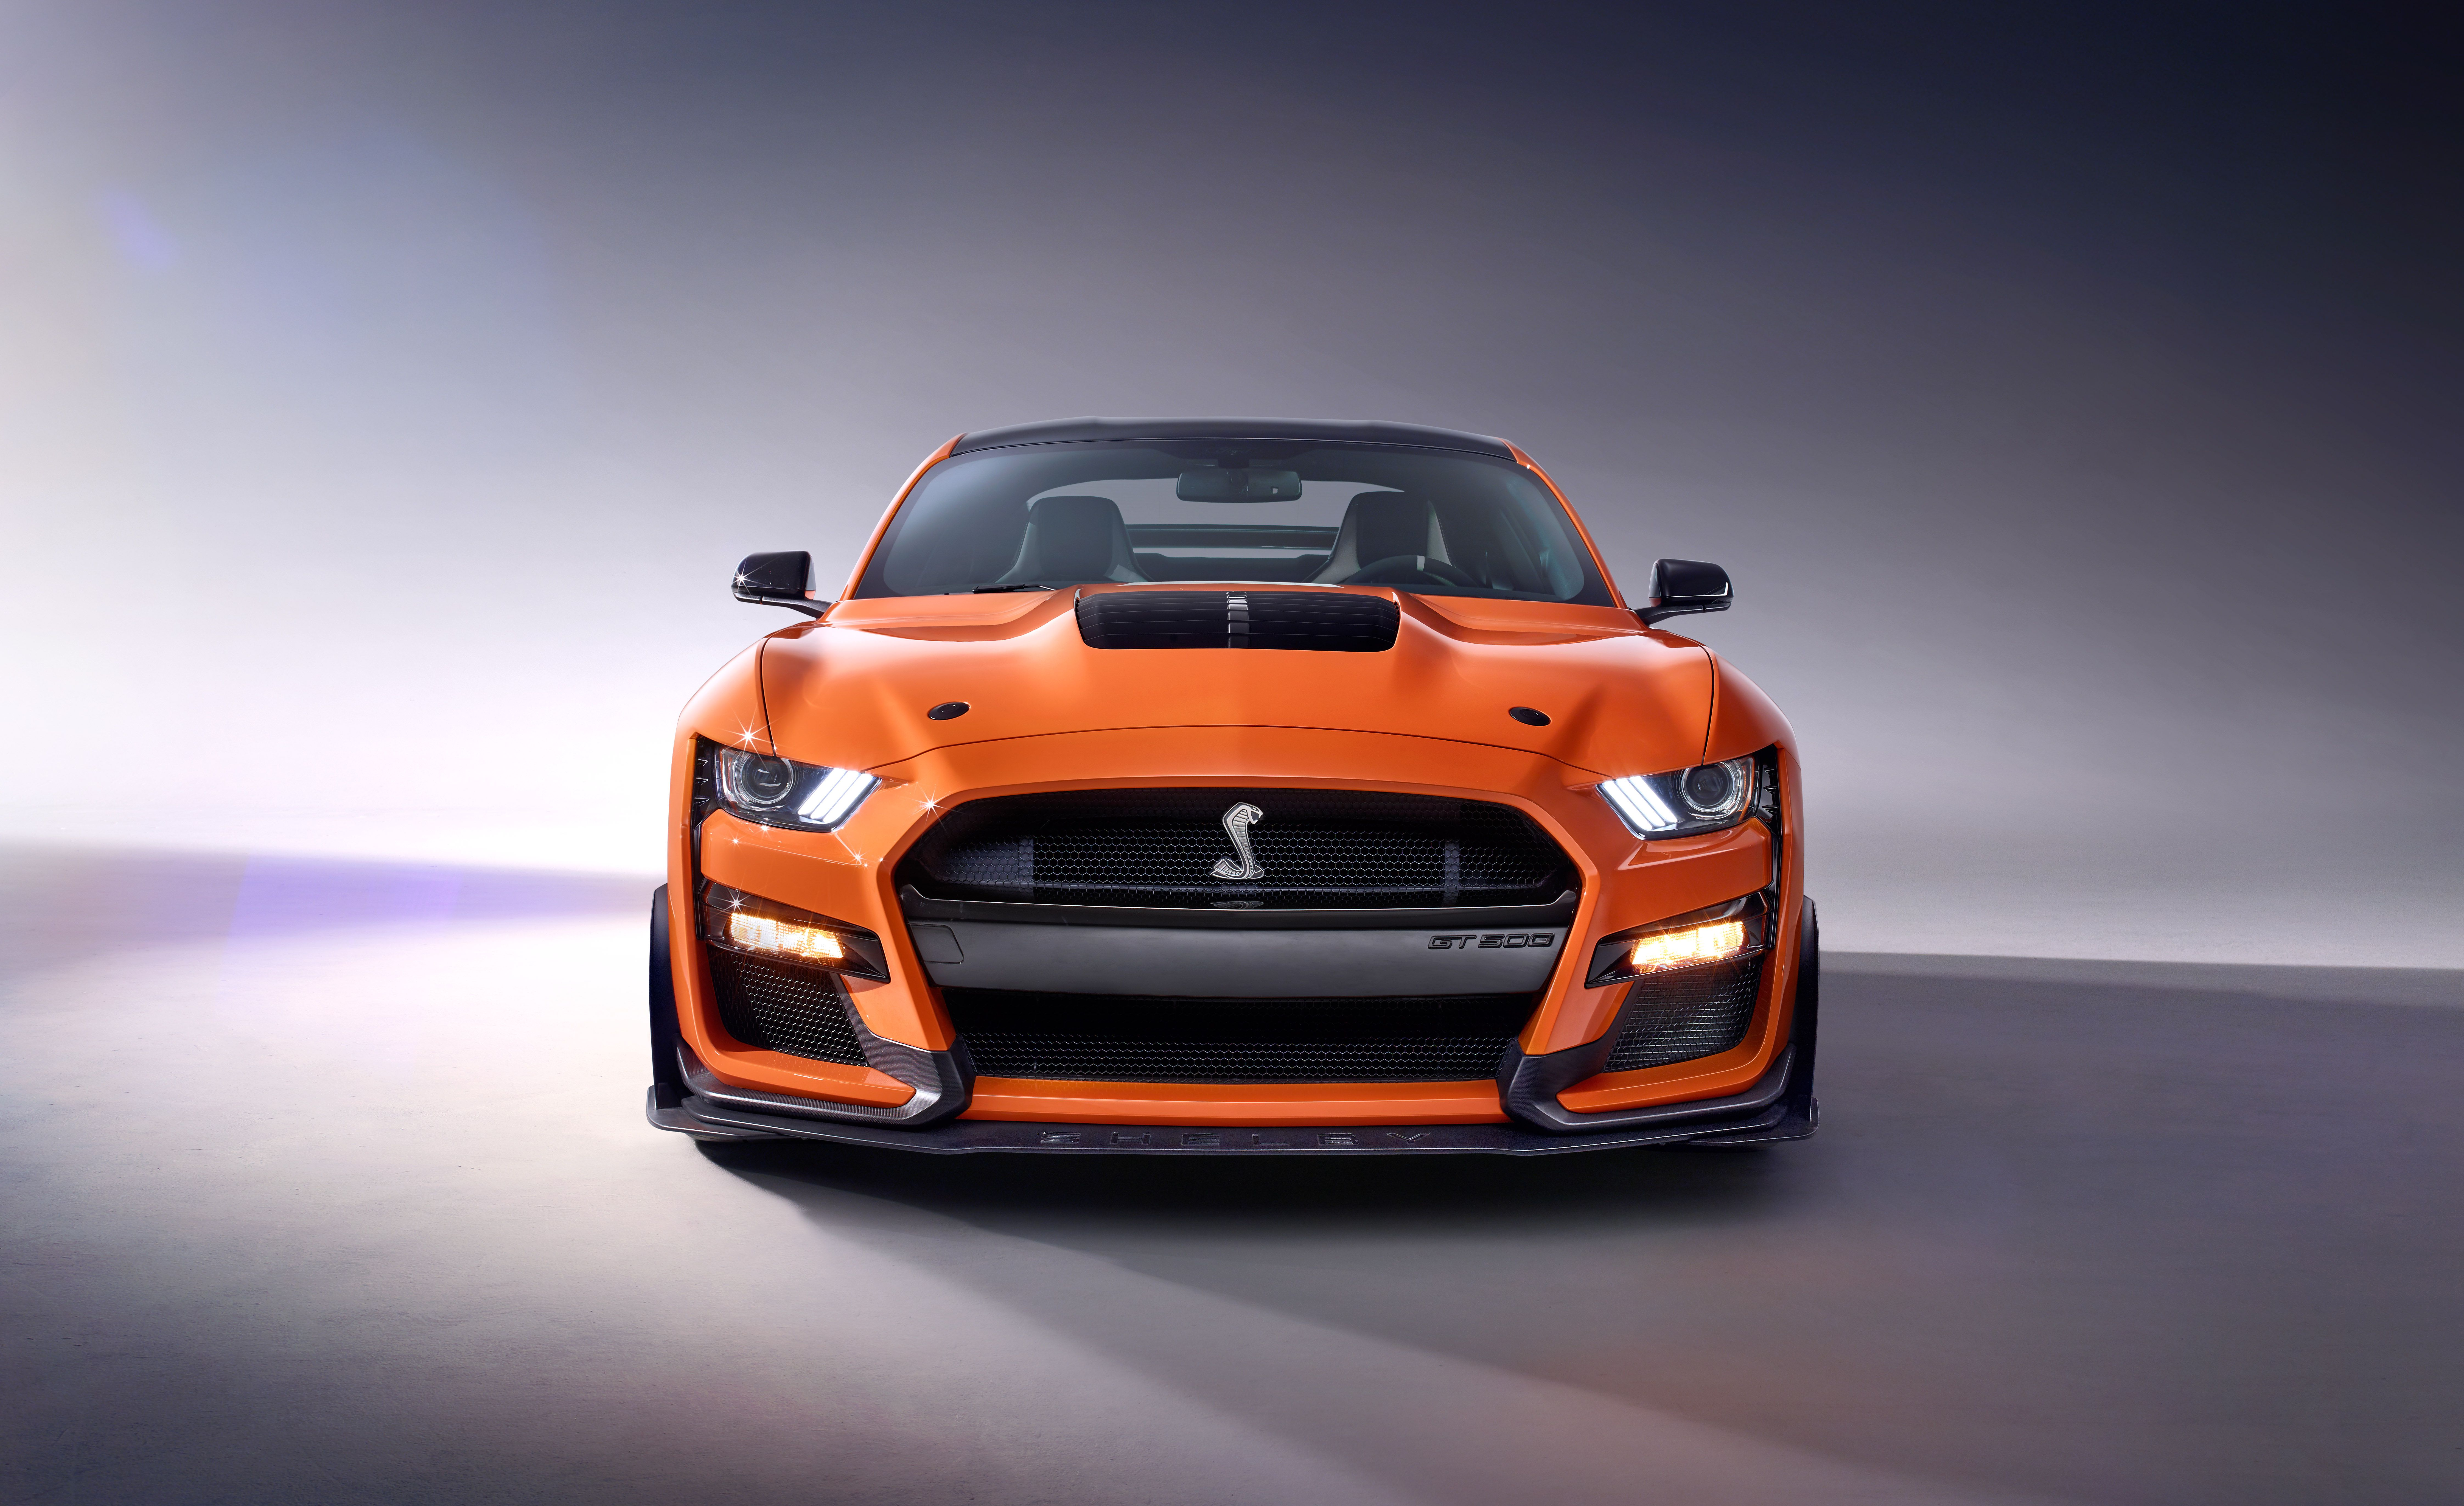 42 The 2020 Mustang Gt500 Research New